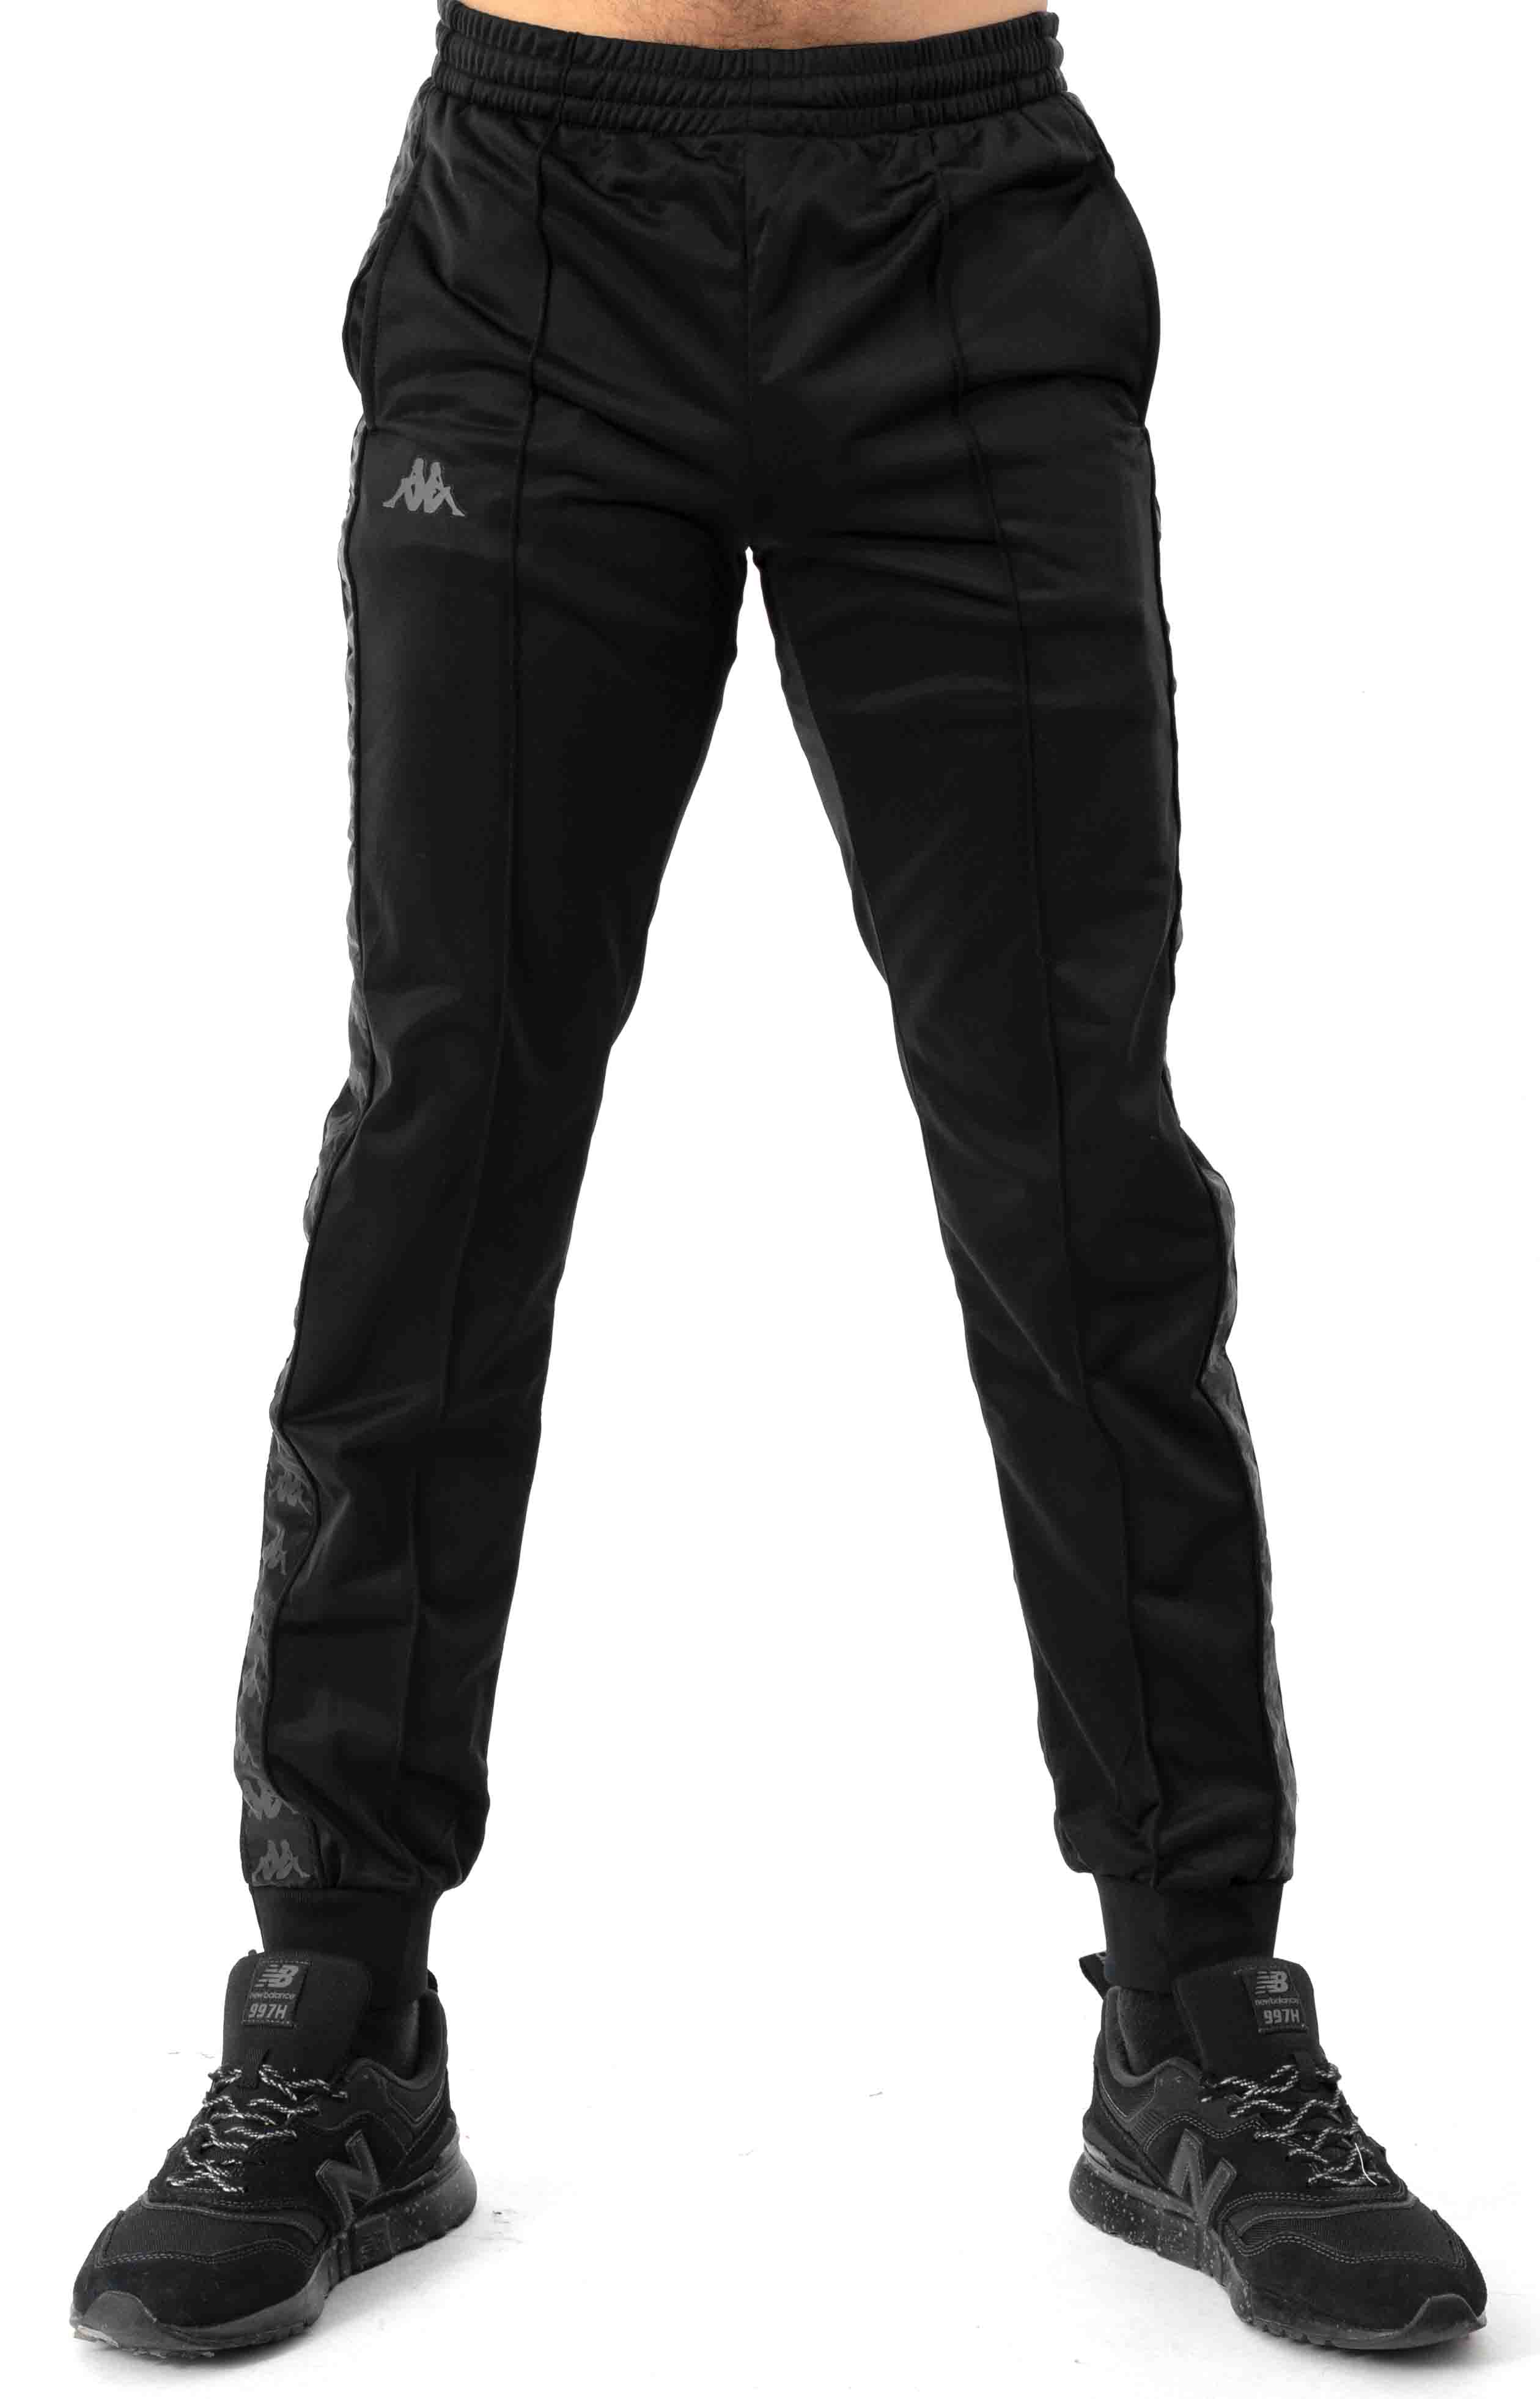 222 Banda Rastoriazz Trackpant - Black/Grey 2